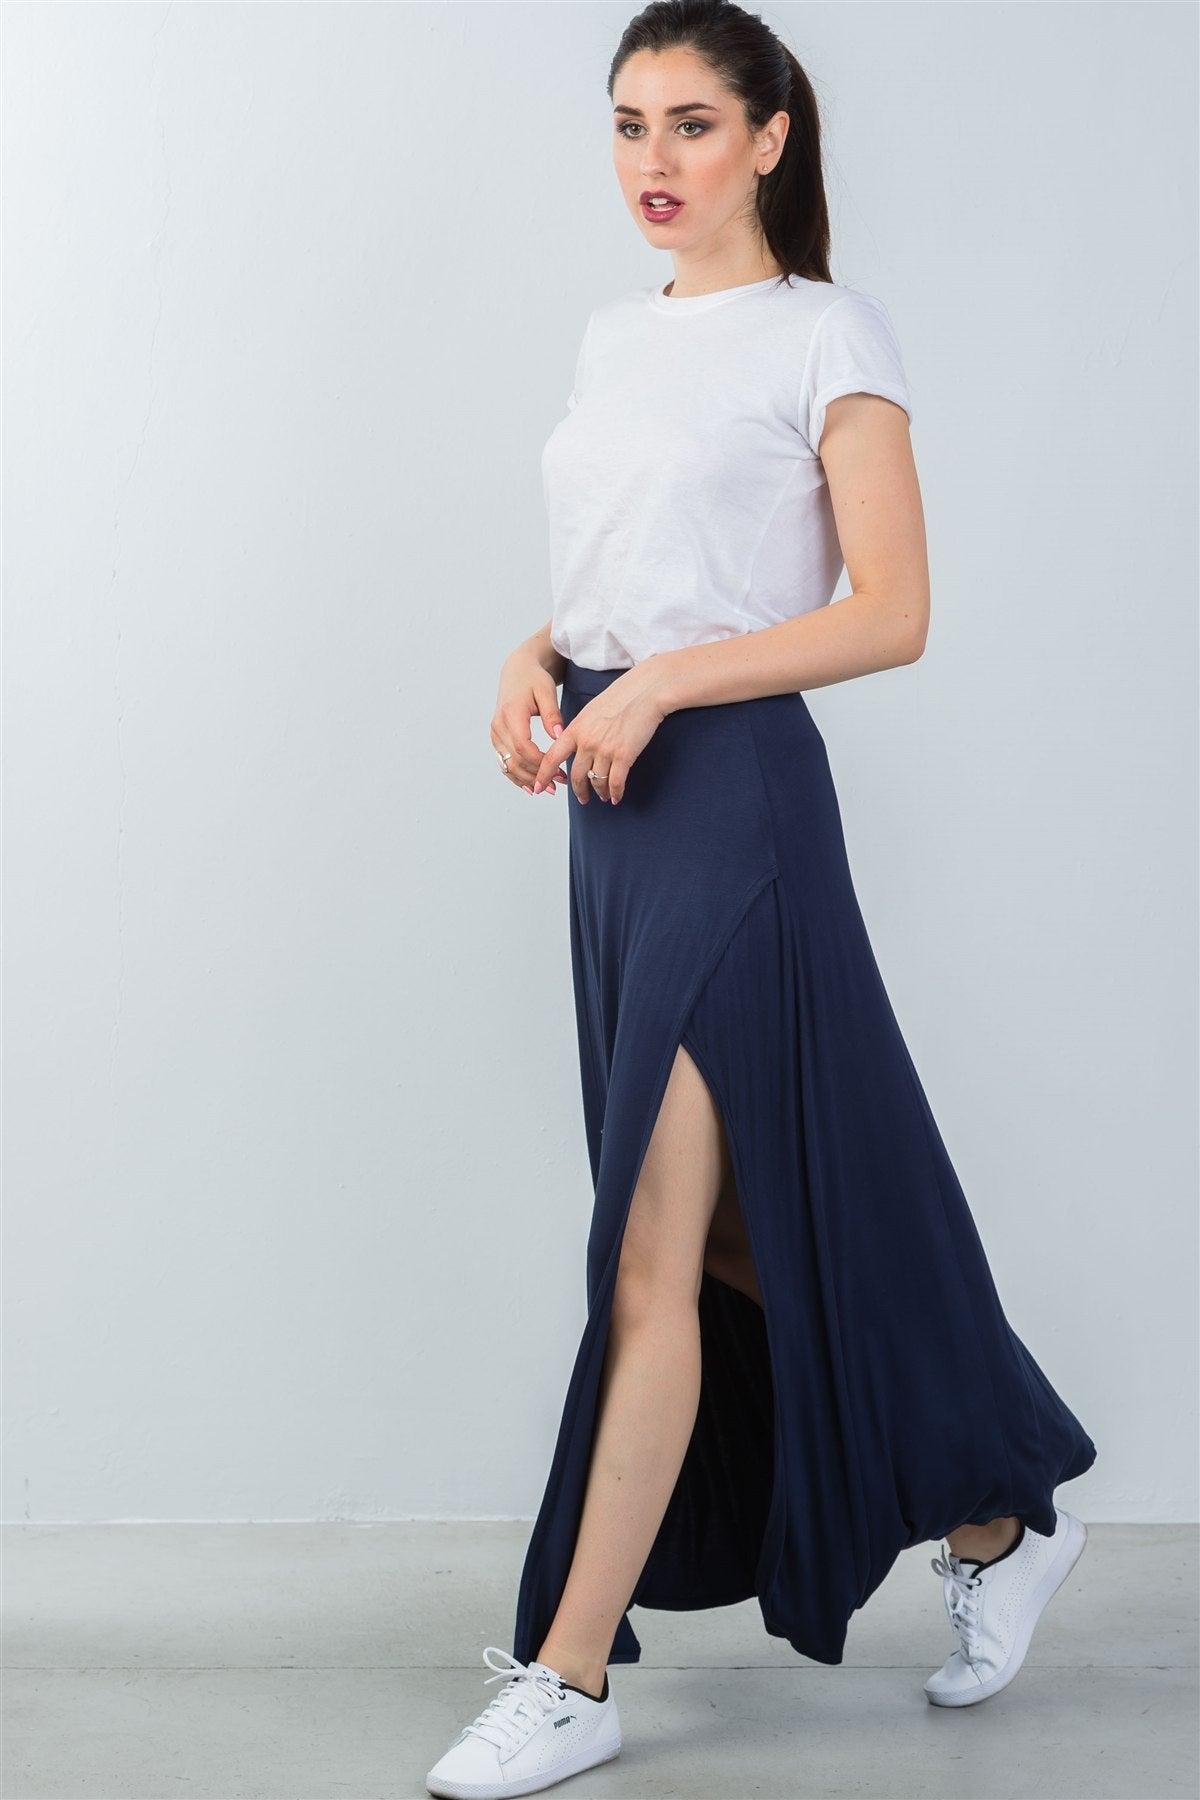 Ladies fashion elastic waist band side slit long skirt - Creole Couture Boutique